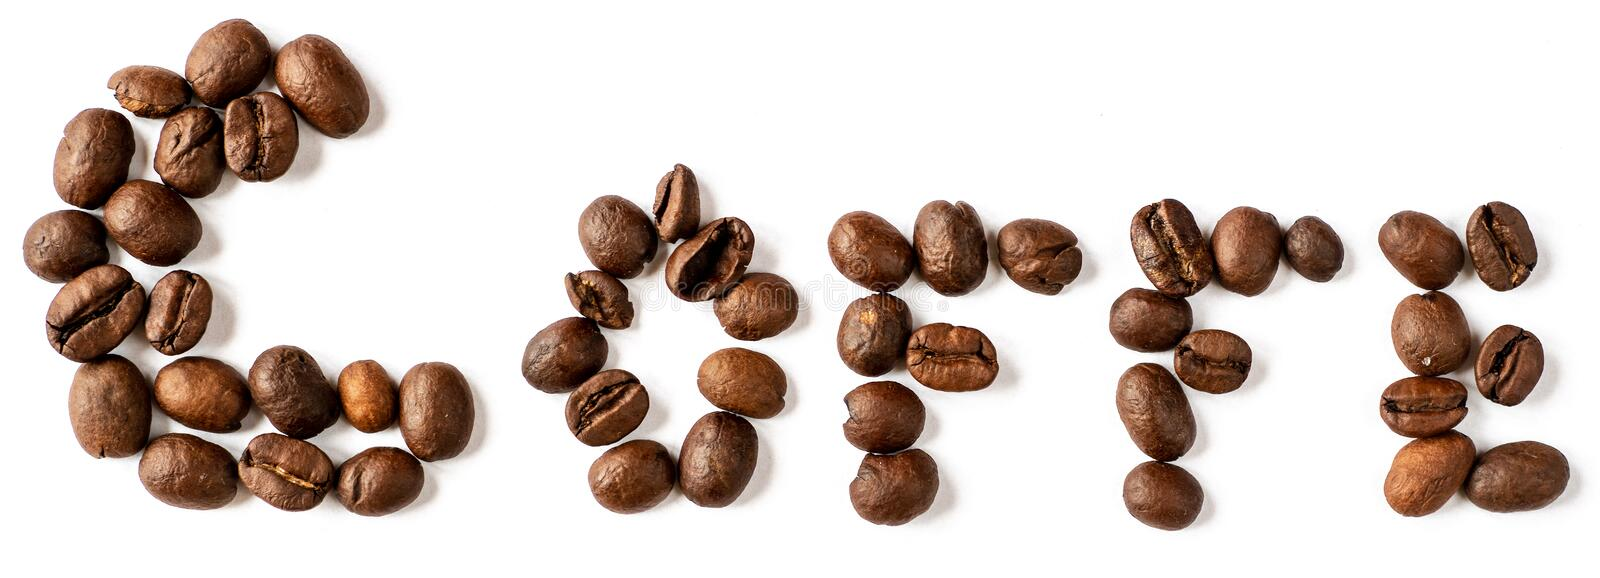 Coffe letters made from coffee beans isolated on white background stock image